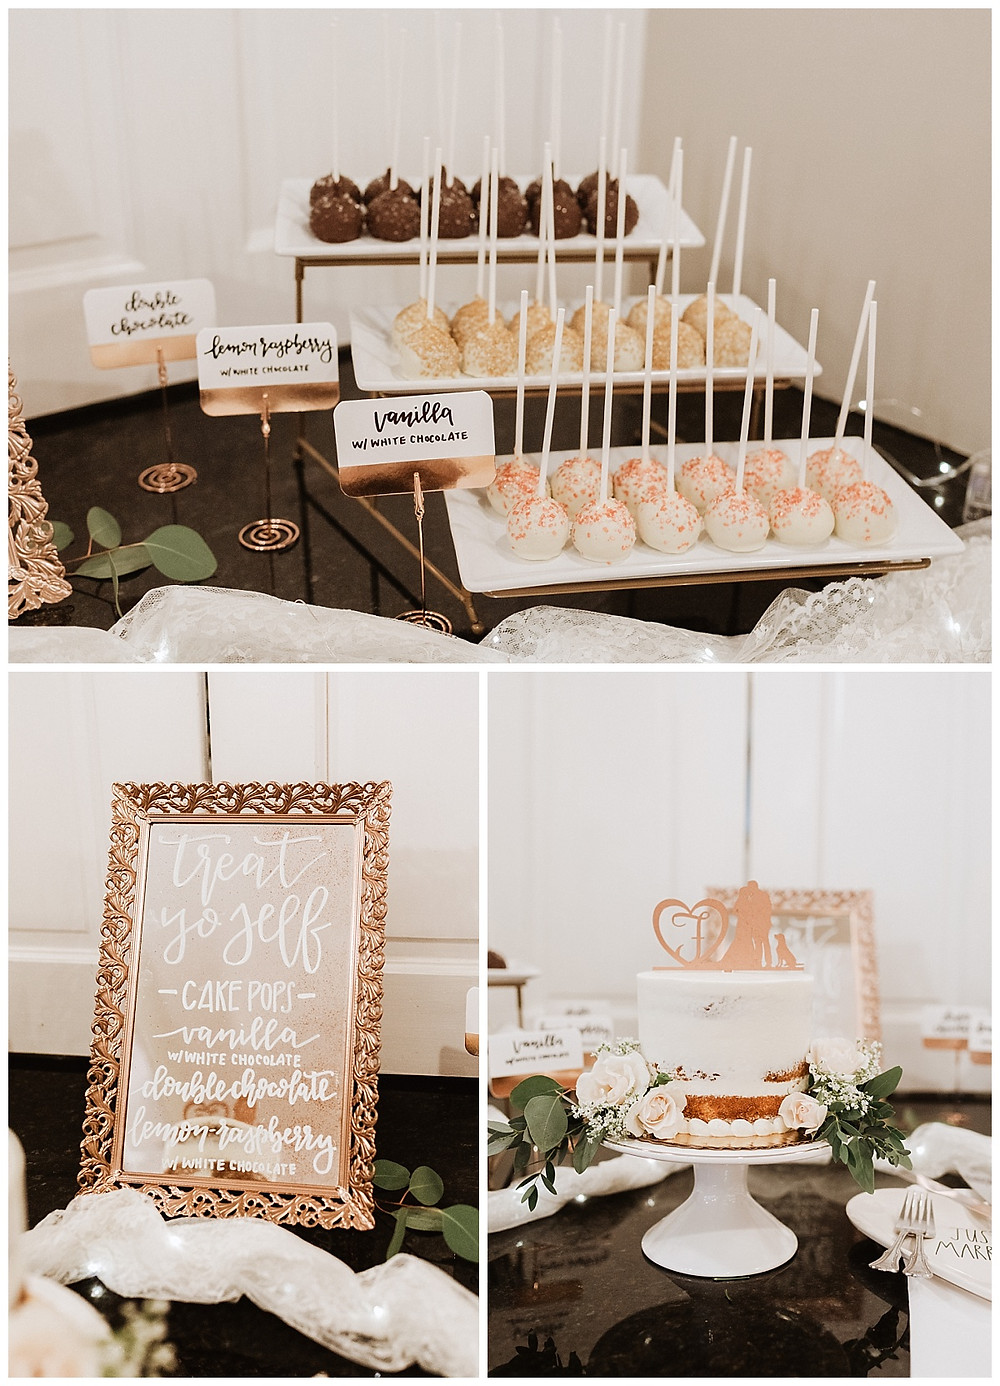 Dessert Cake Pop Bar and Wedding Cake